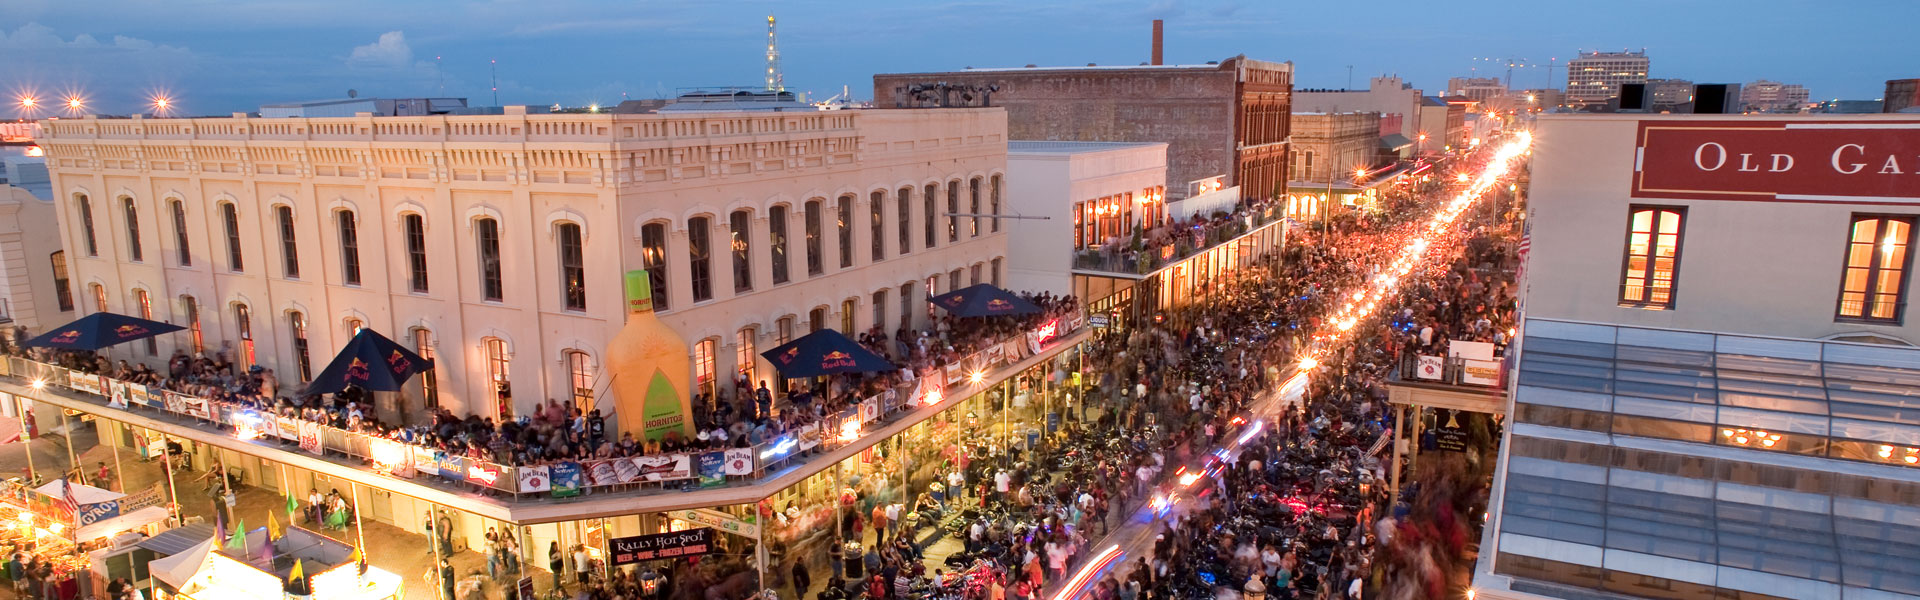 Festival on The Strand, Galveston, TX